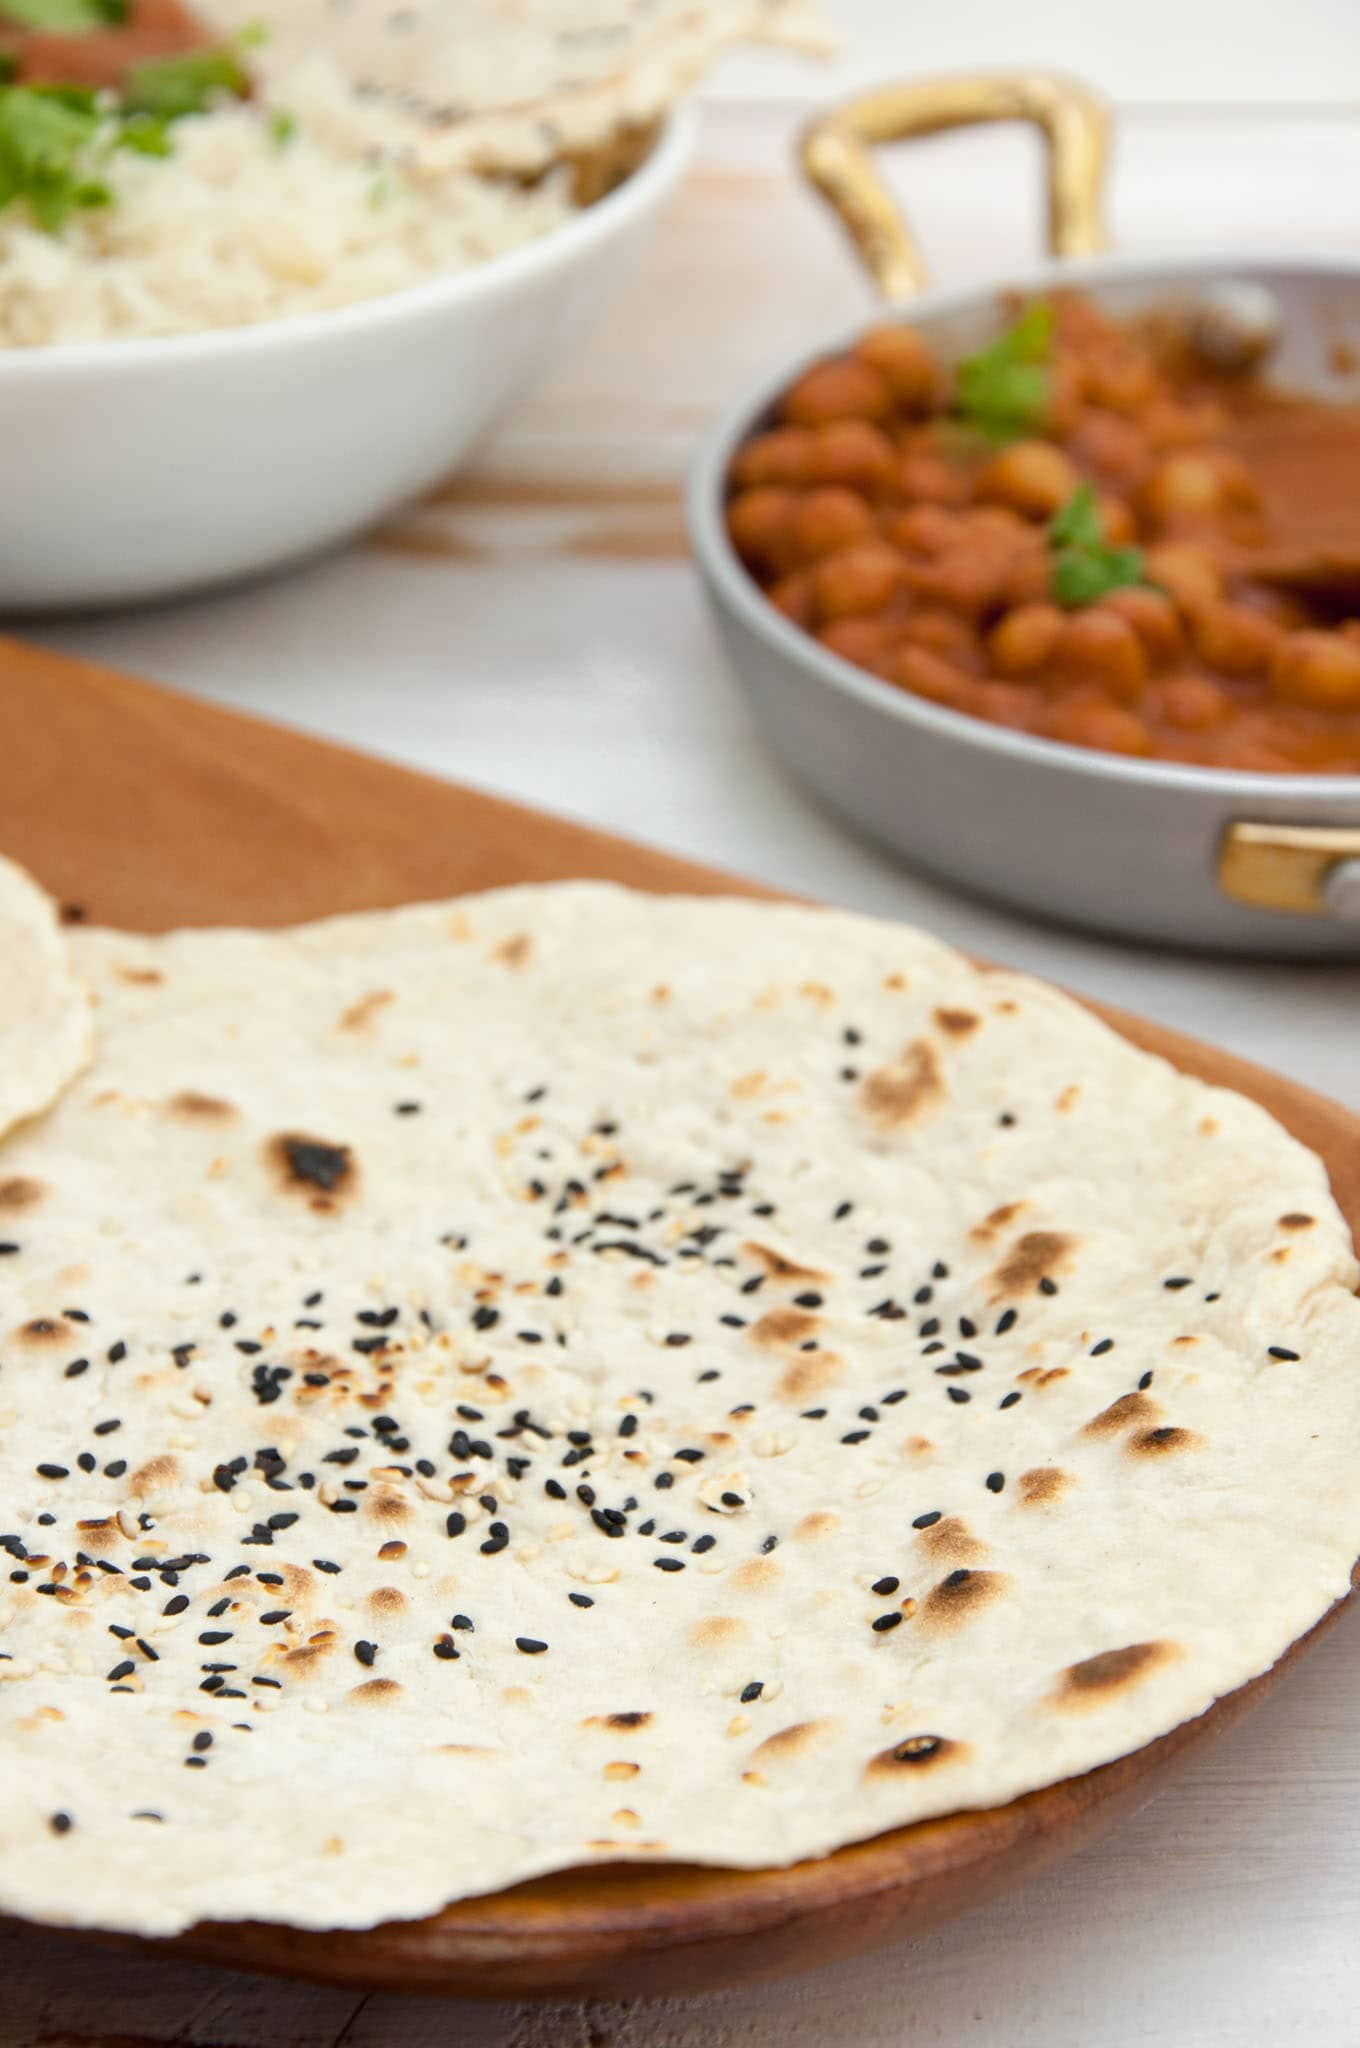 Vegan Sesame Naan with chickpea curry